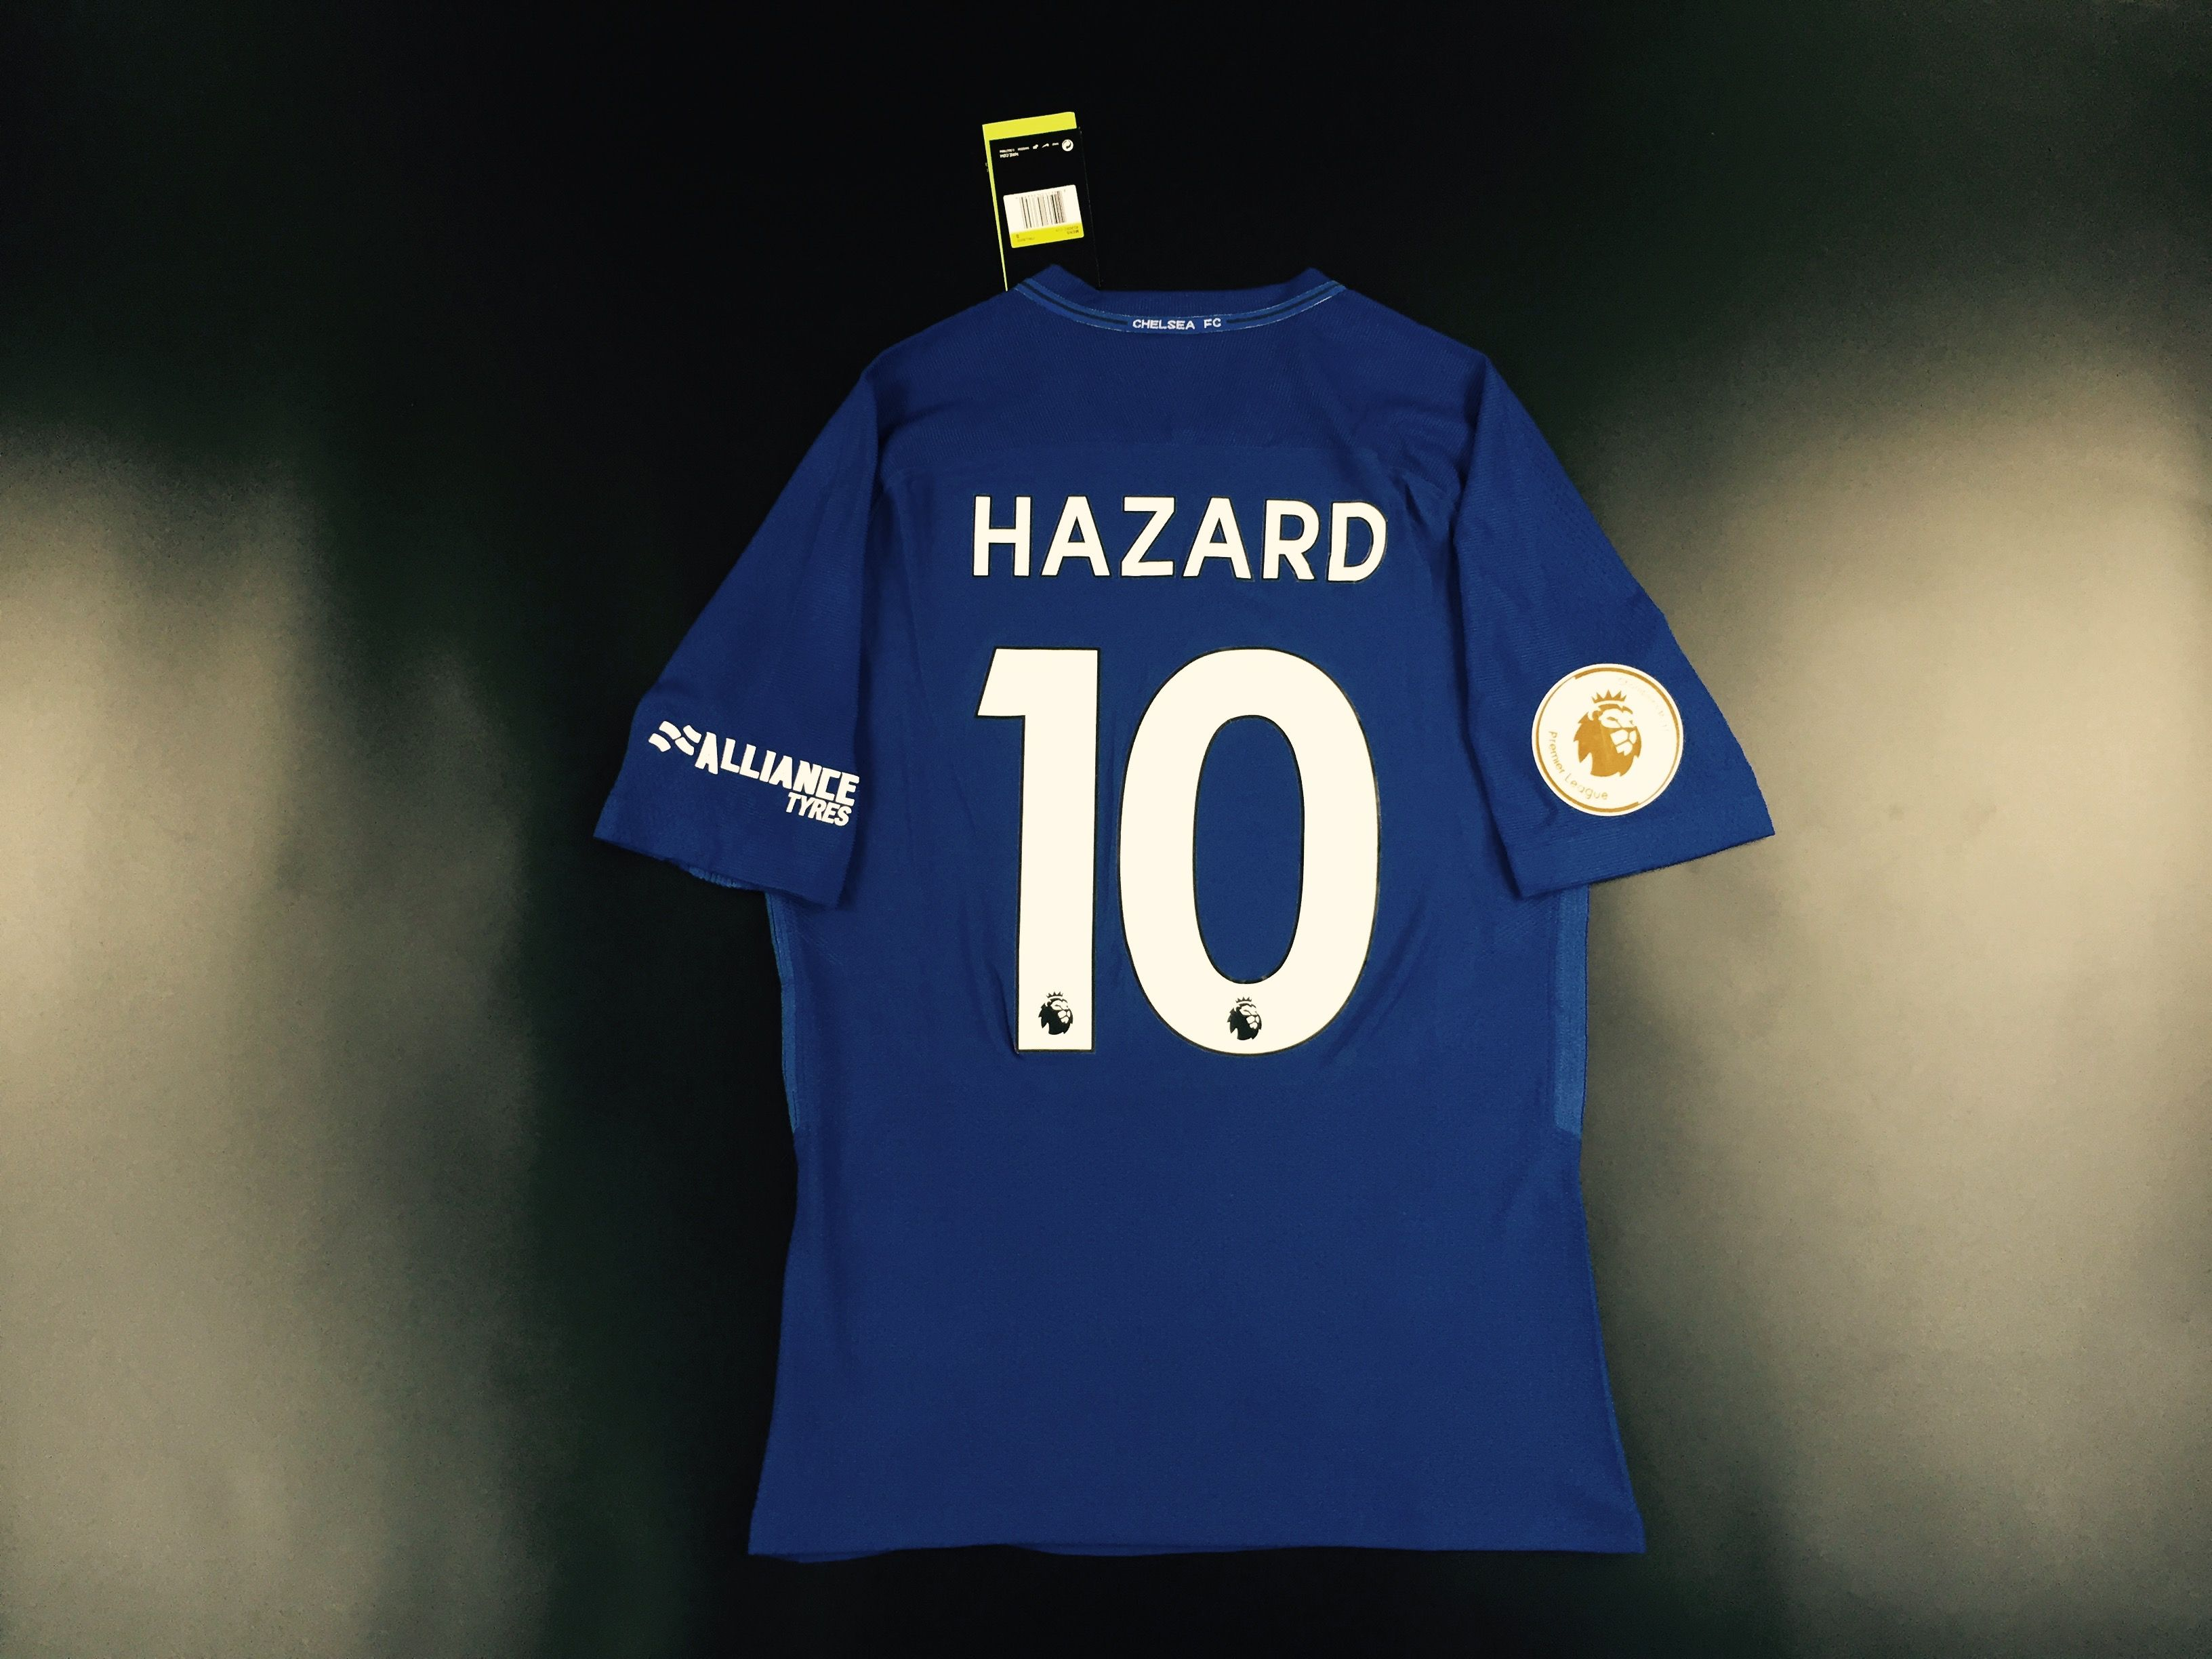 7b434df87740 Chelsea Home soccer jersey  10 hazard with patch